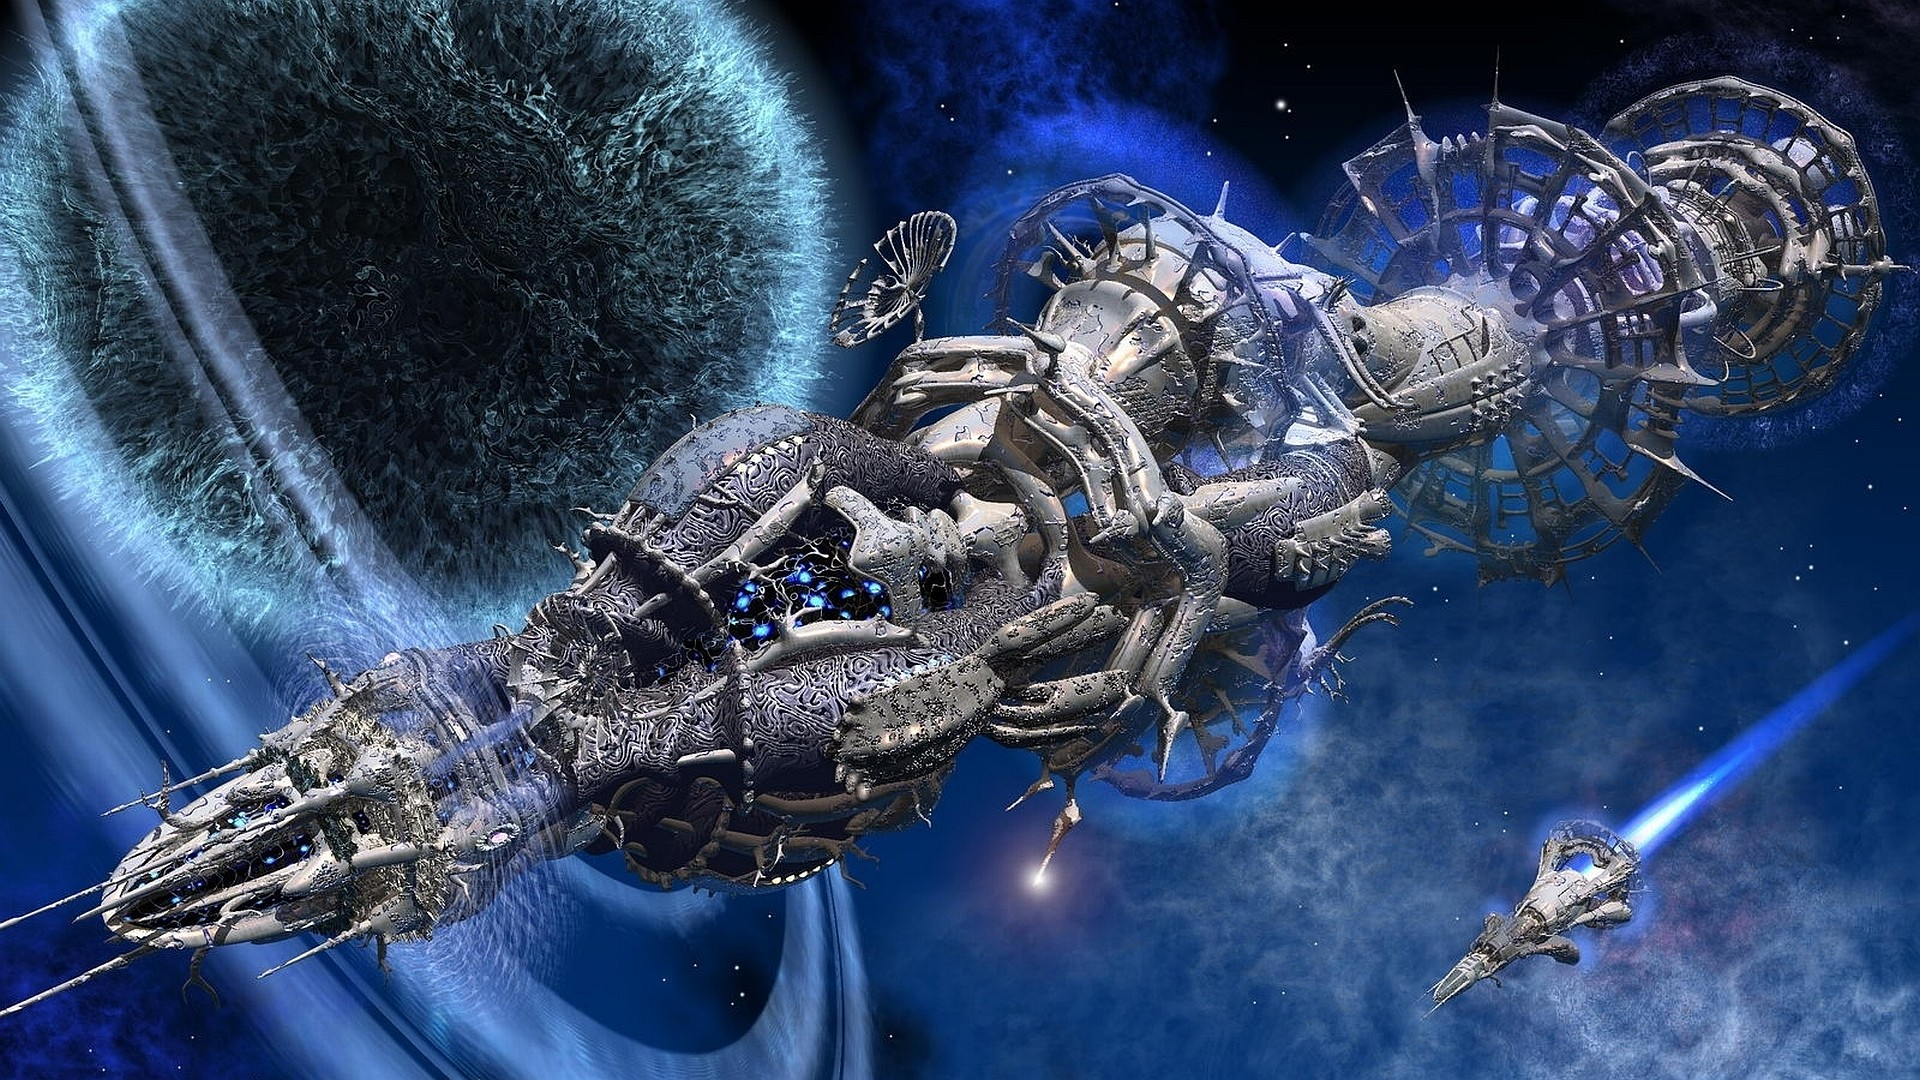 Outer space futuristic planets spaceships science fiction ...